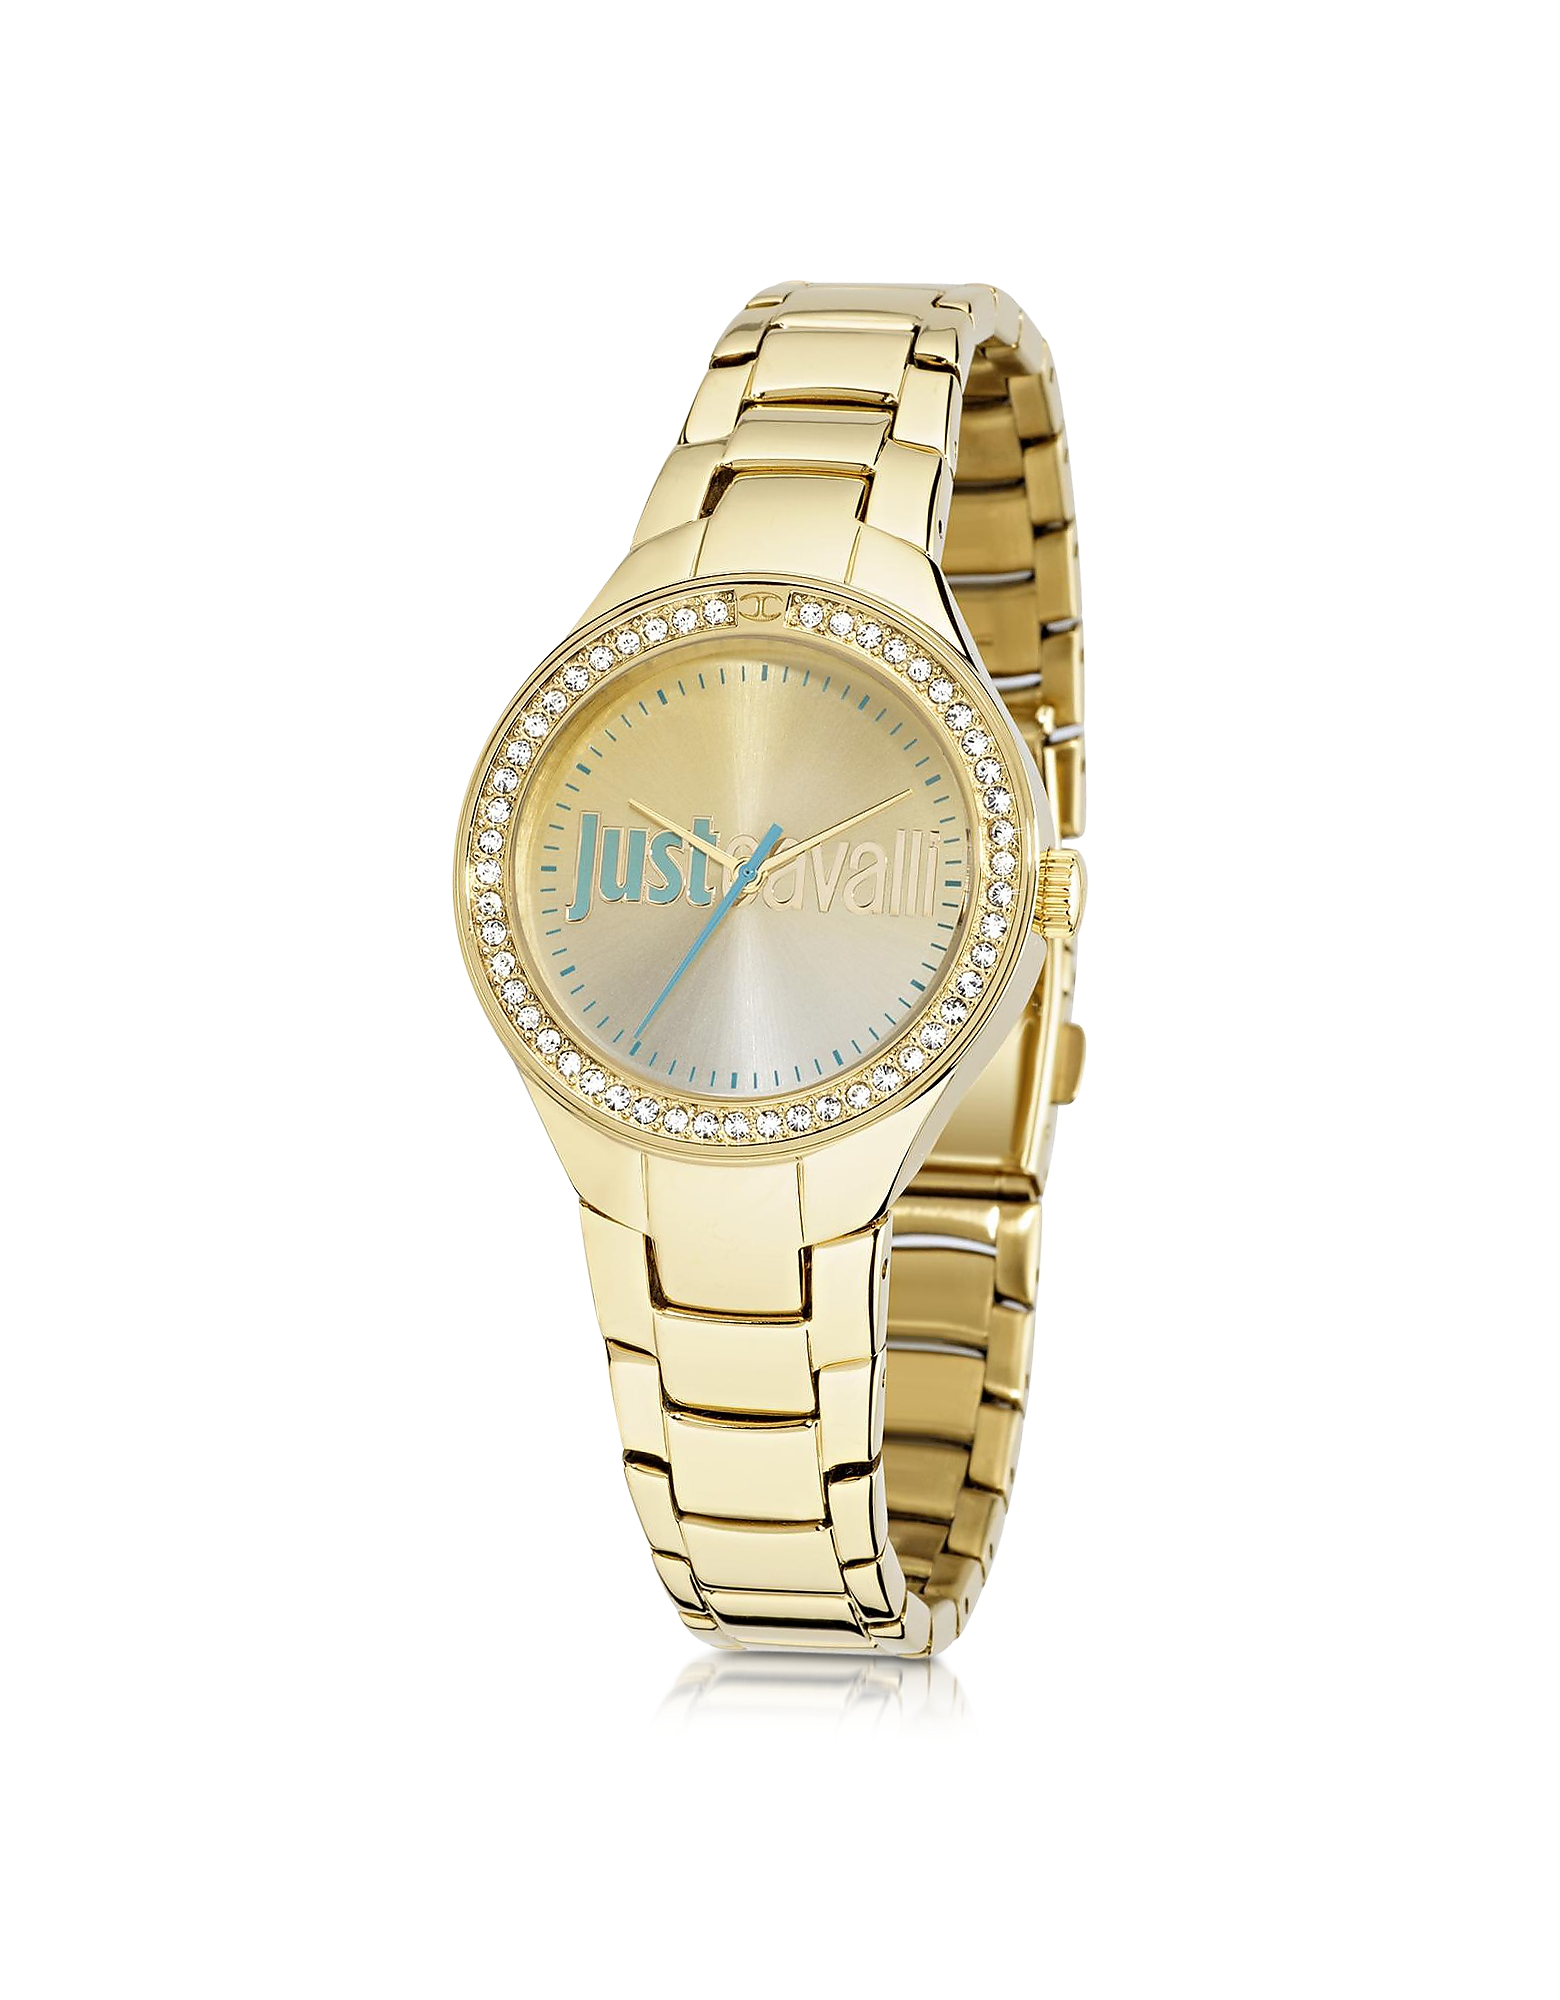 Just Cavalli Women's Watches, Just Shade 3H Gold Tone Stainless Steel Women's Watch